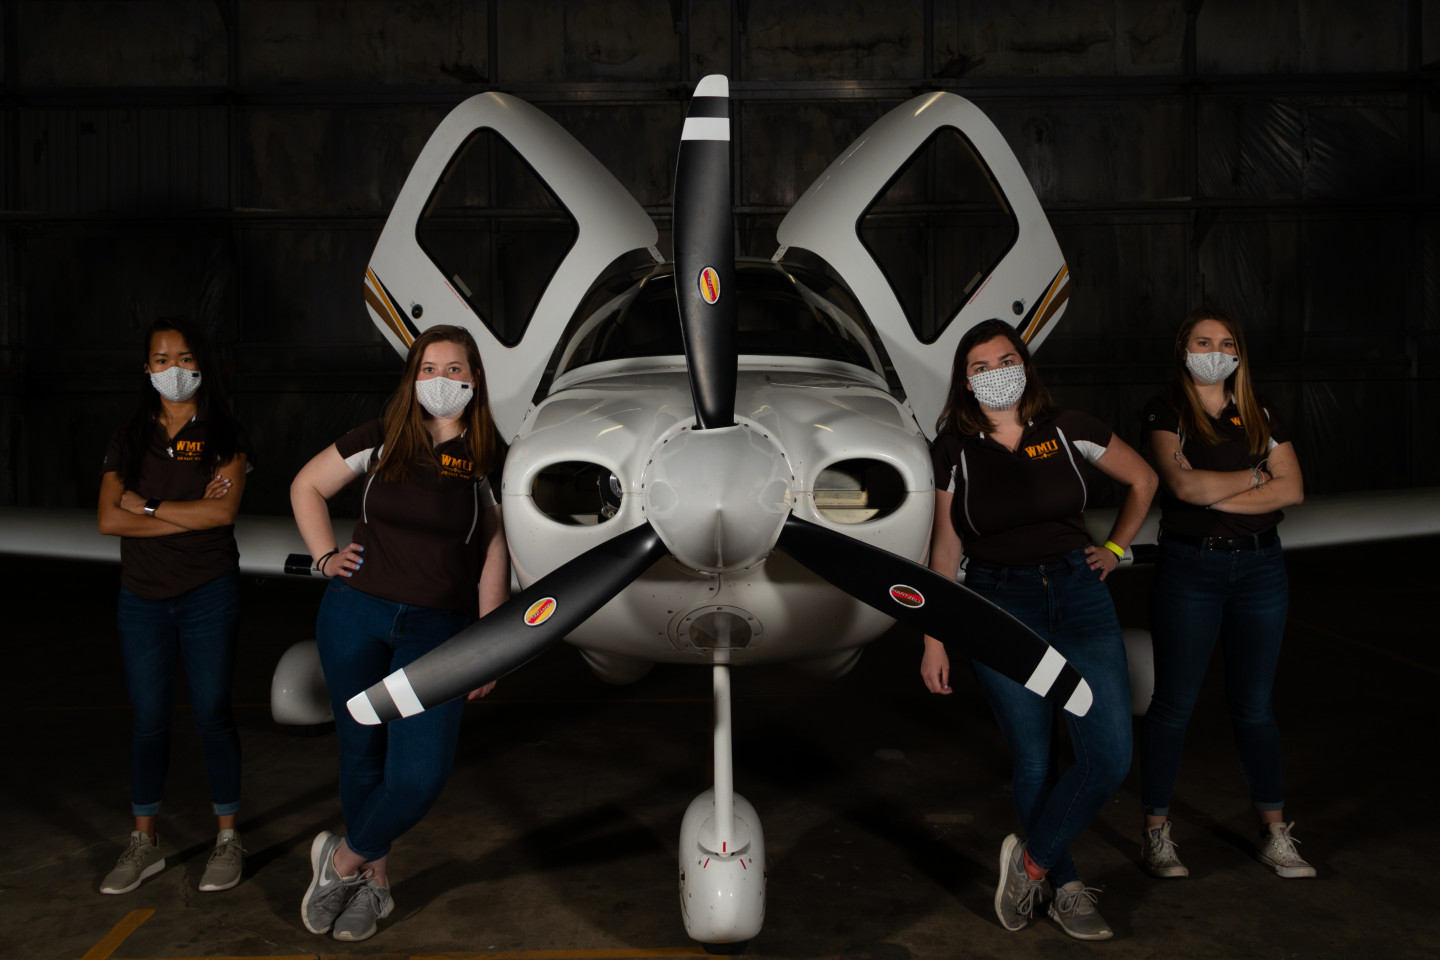 Four aviation students standing in front of a plane.